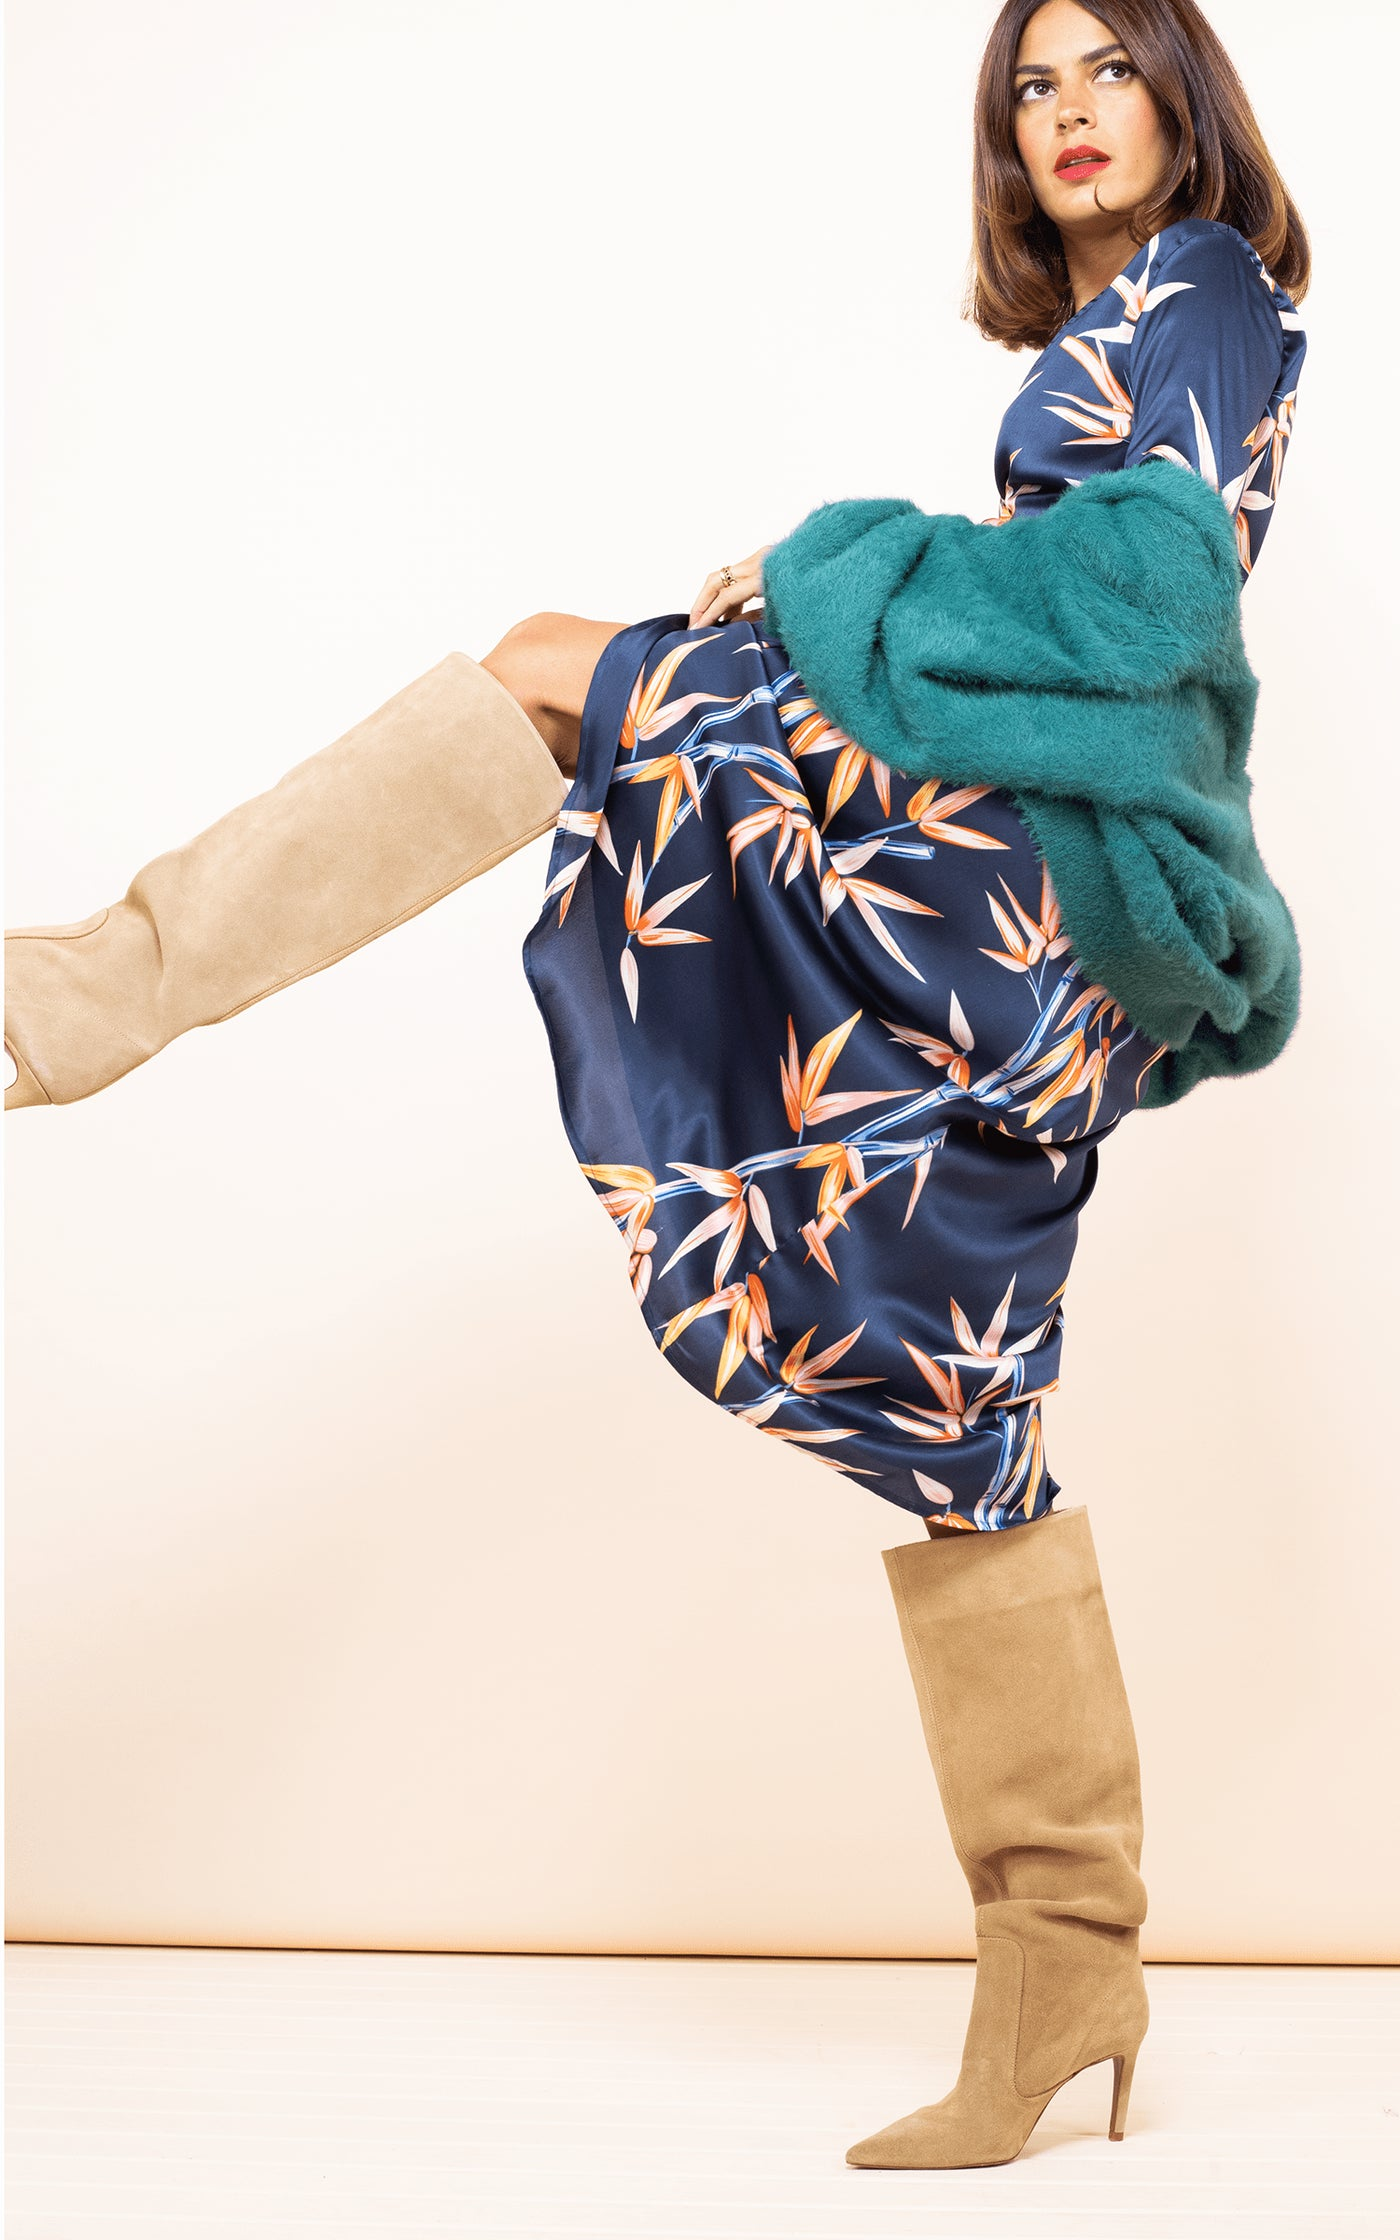 Dancing Leopard model faces side-on and kicks leg up wearing Yondal Dress in Bamboo with green cardigan and boots